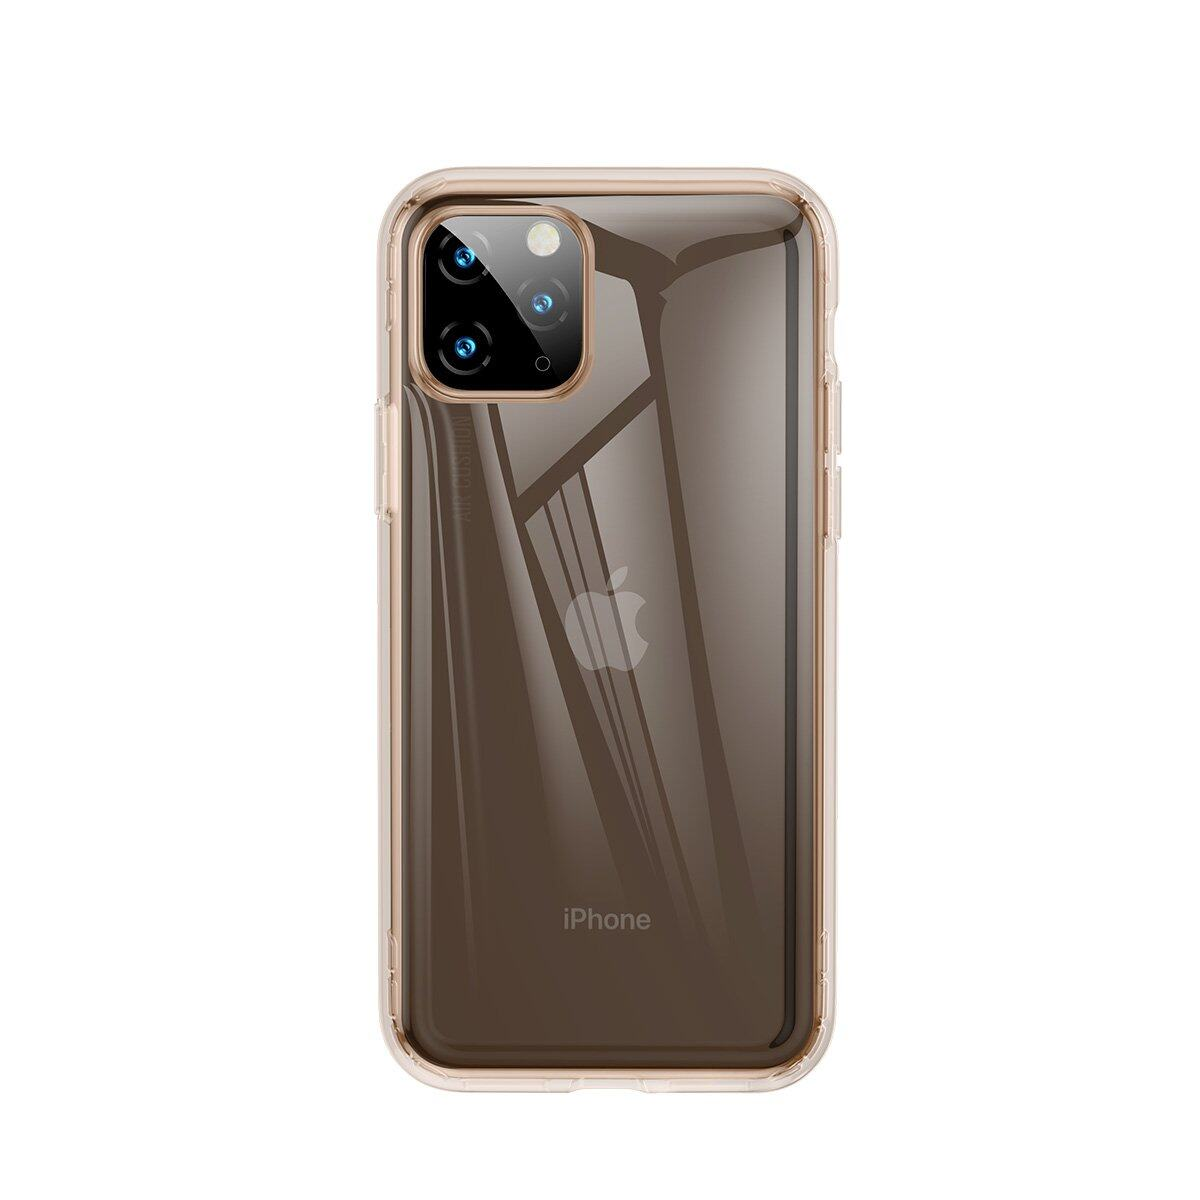 Baseus Safety Airbags Case For iPhone 11 Pro 5.8inch,  TPU Material, Anti-fingerprint, Durable and Flexible, Four corner cushioning for shock resistant protection, Transparent / Black / Gold